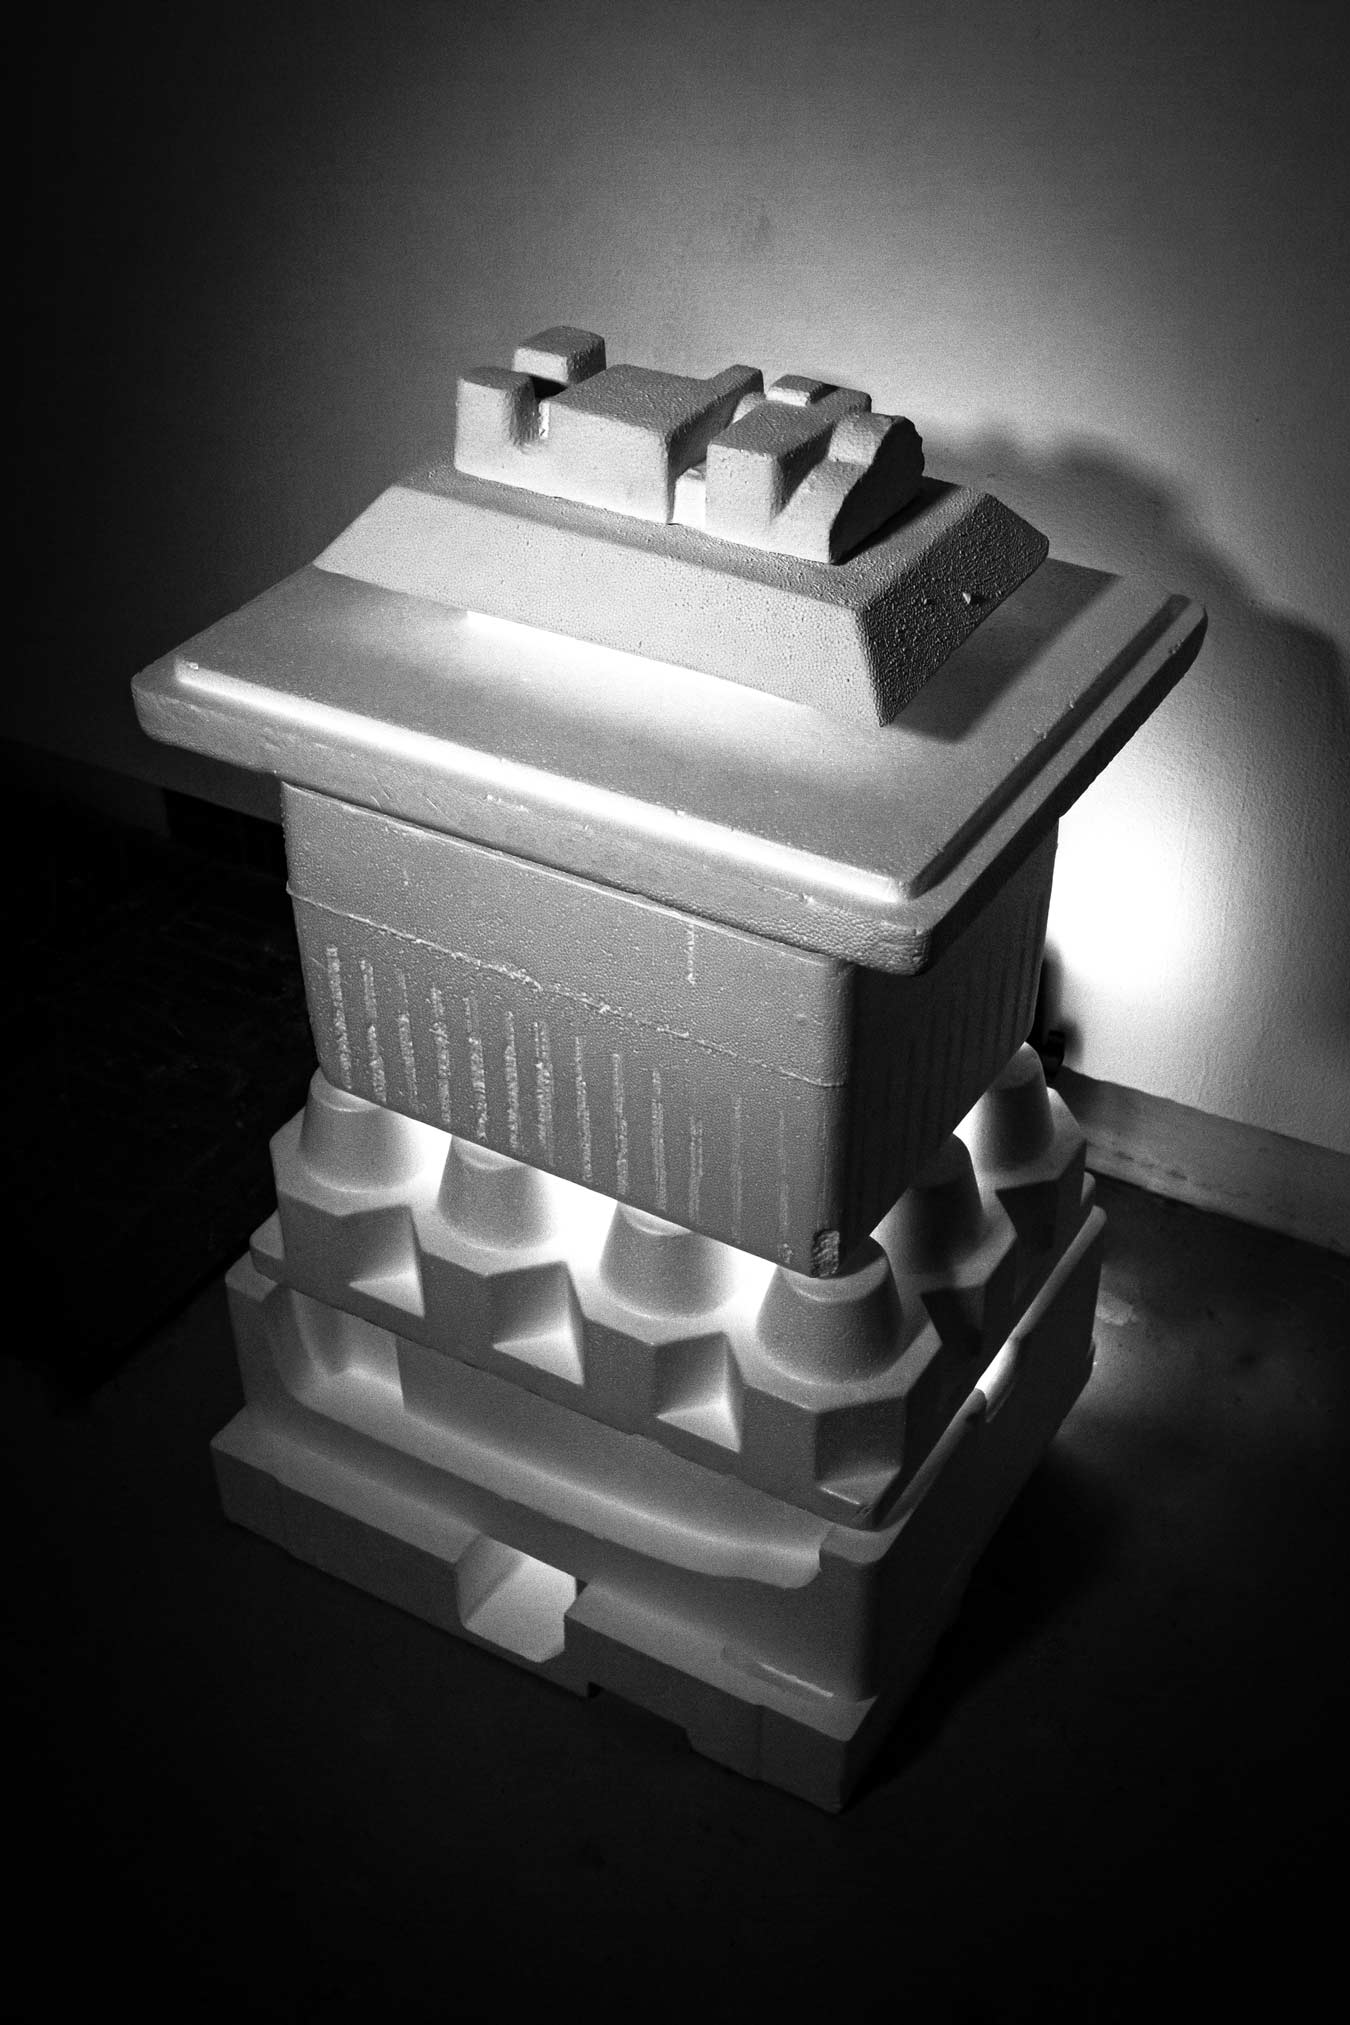 Dramatically lit black and white photo print of an architectural sculpture (angled view). Features a rectangular base, cone-like structures, then another rectangular section. On top is a flat-topped rectangular pyramid.